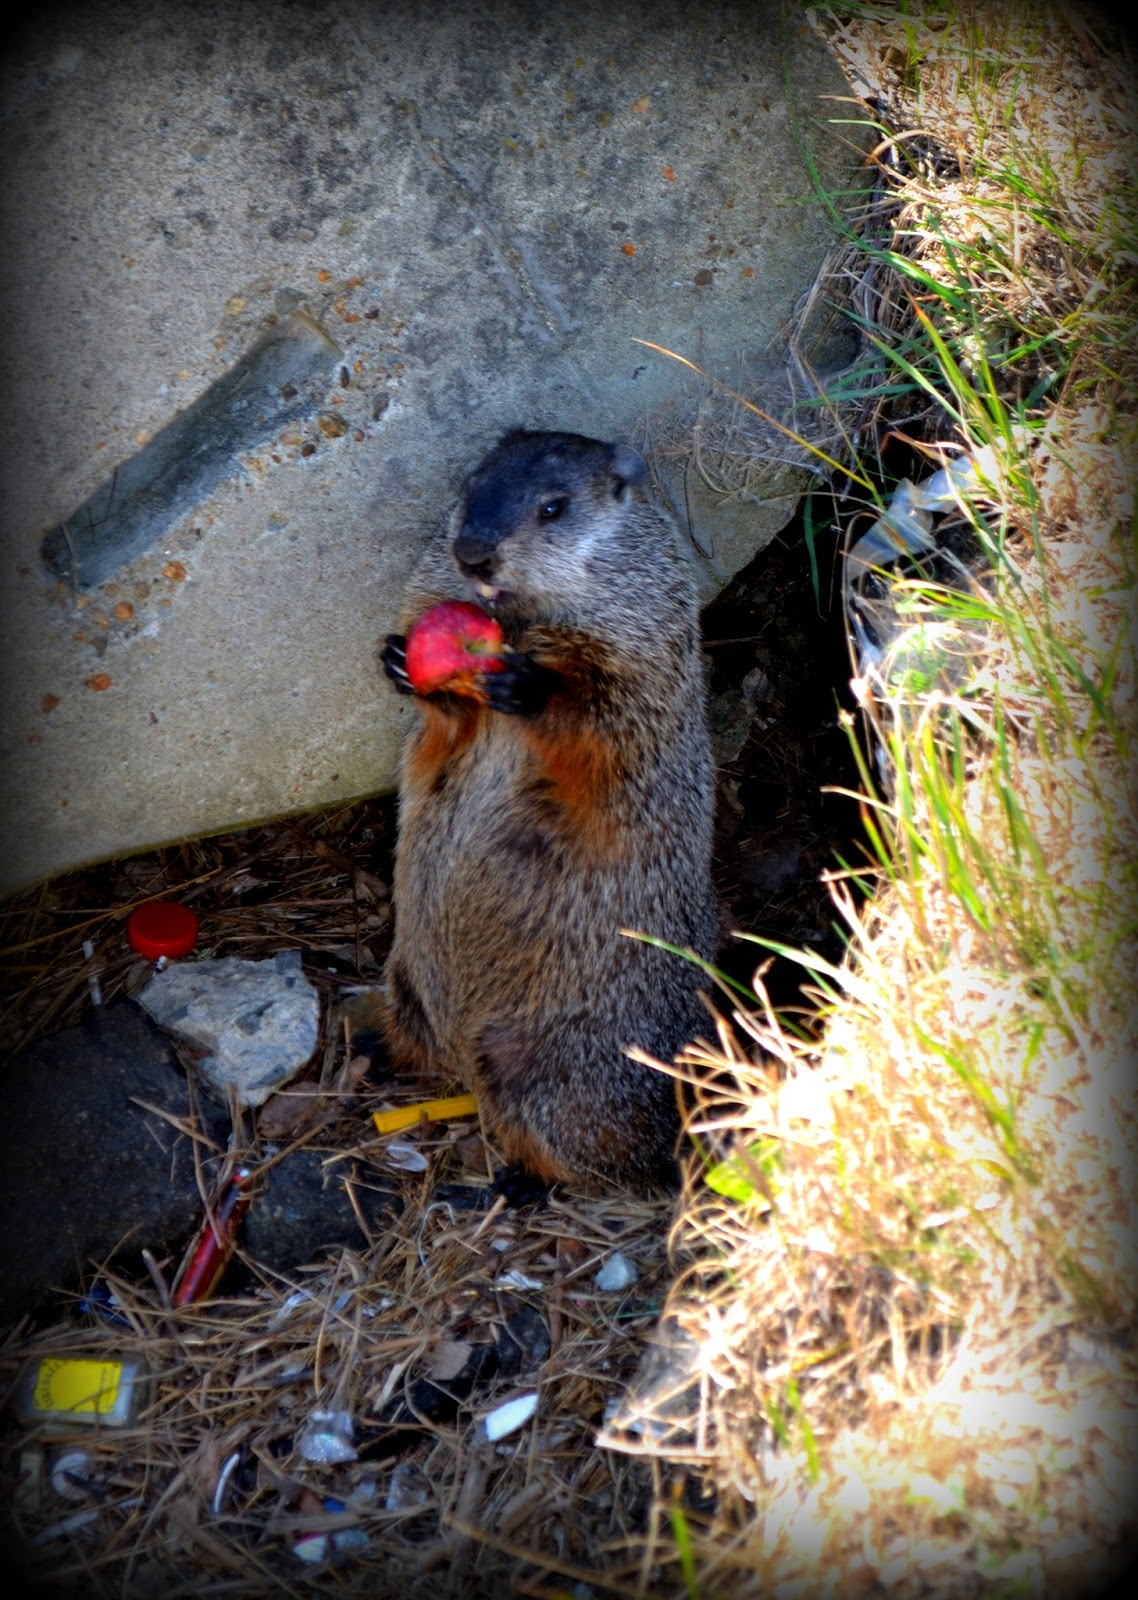 groundhog, gopher, woodchuck, apple, shadow